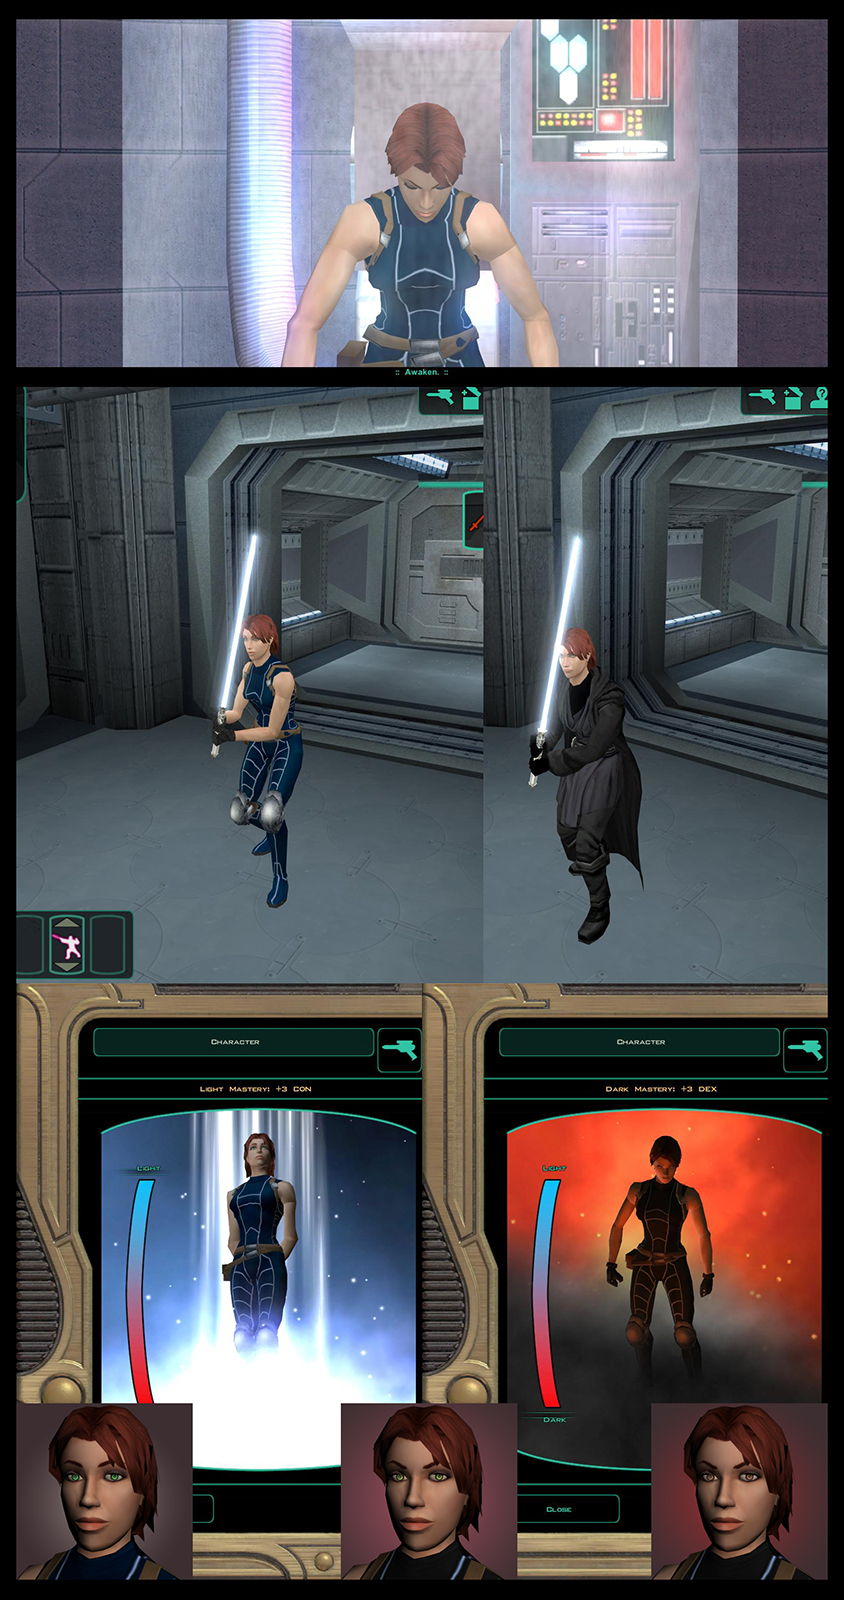 Kotor2 skin mods naked picture